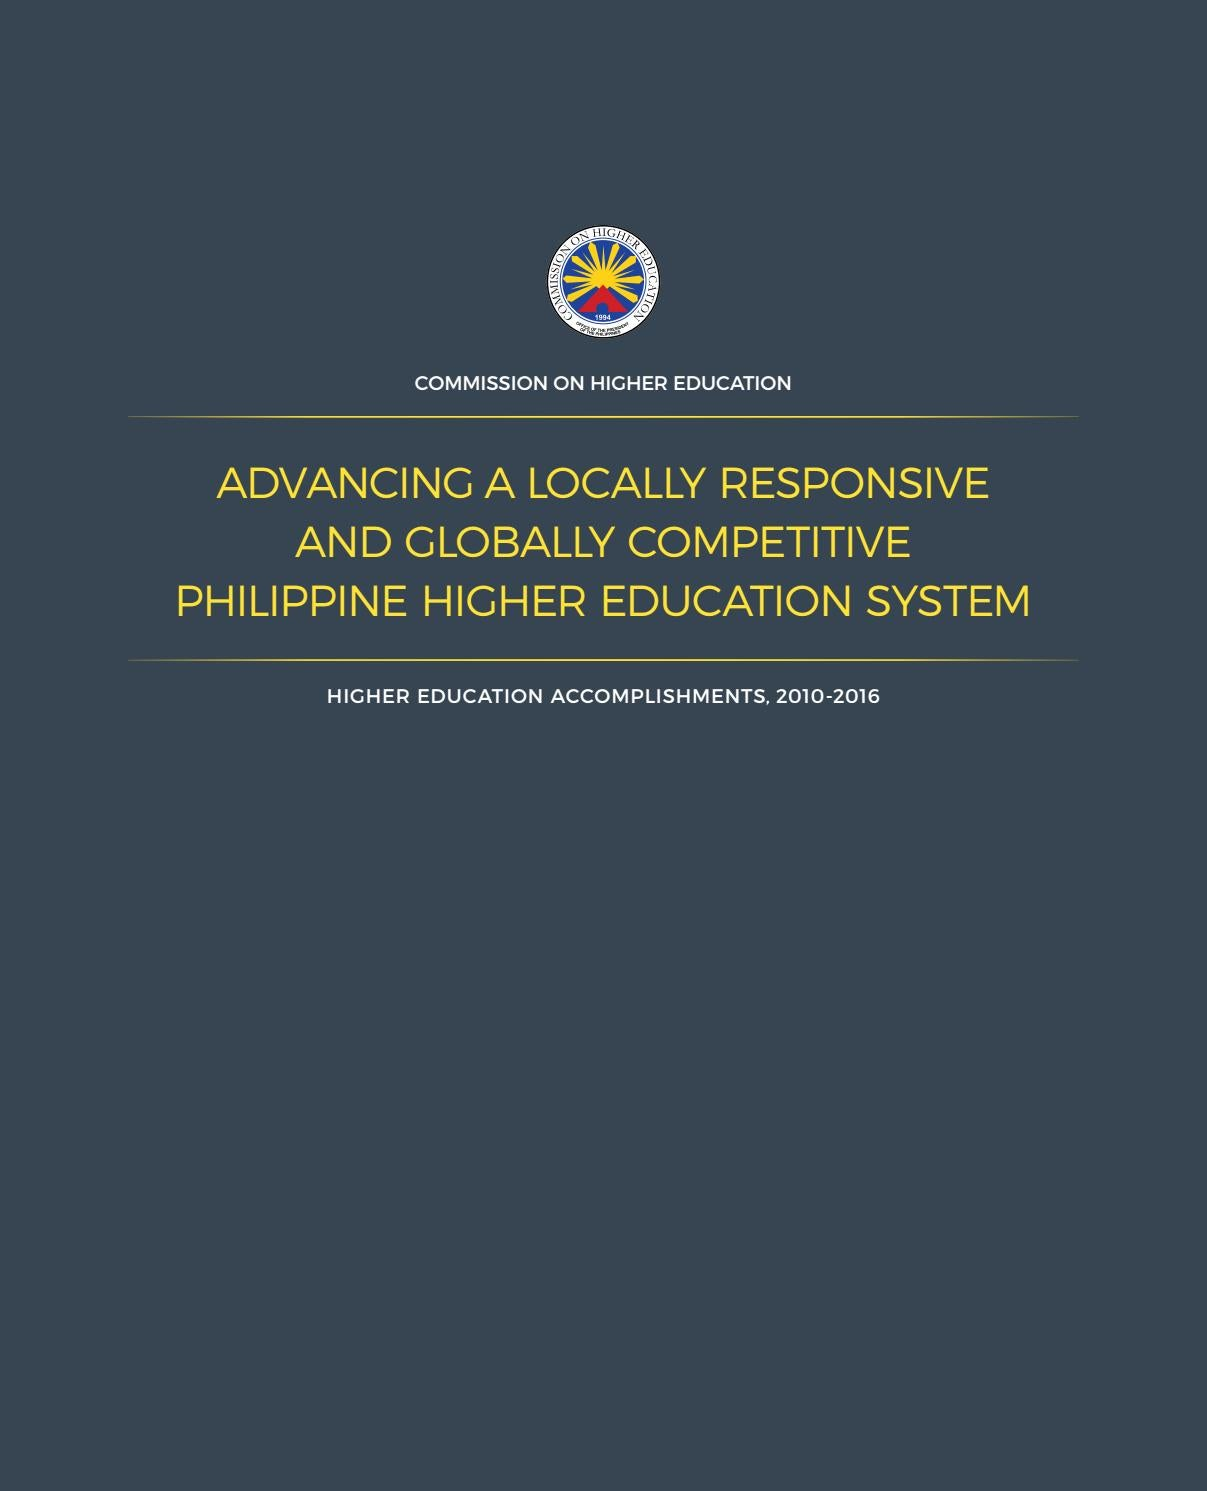 CHED Accomplishment Report 2010-2016 by pktan - issuu